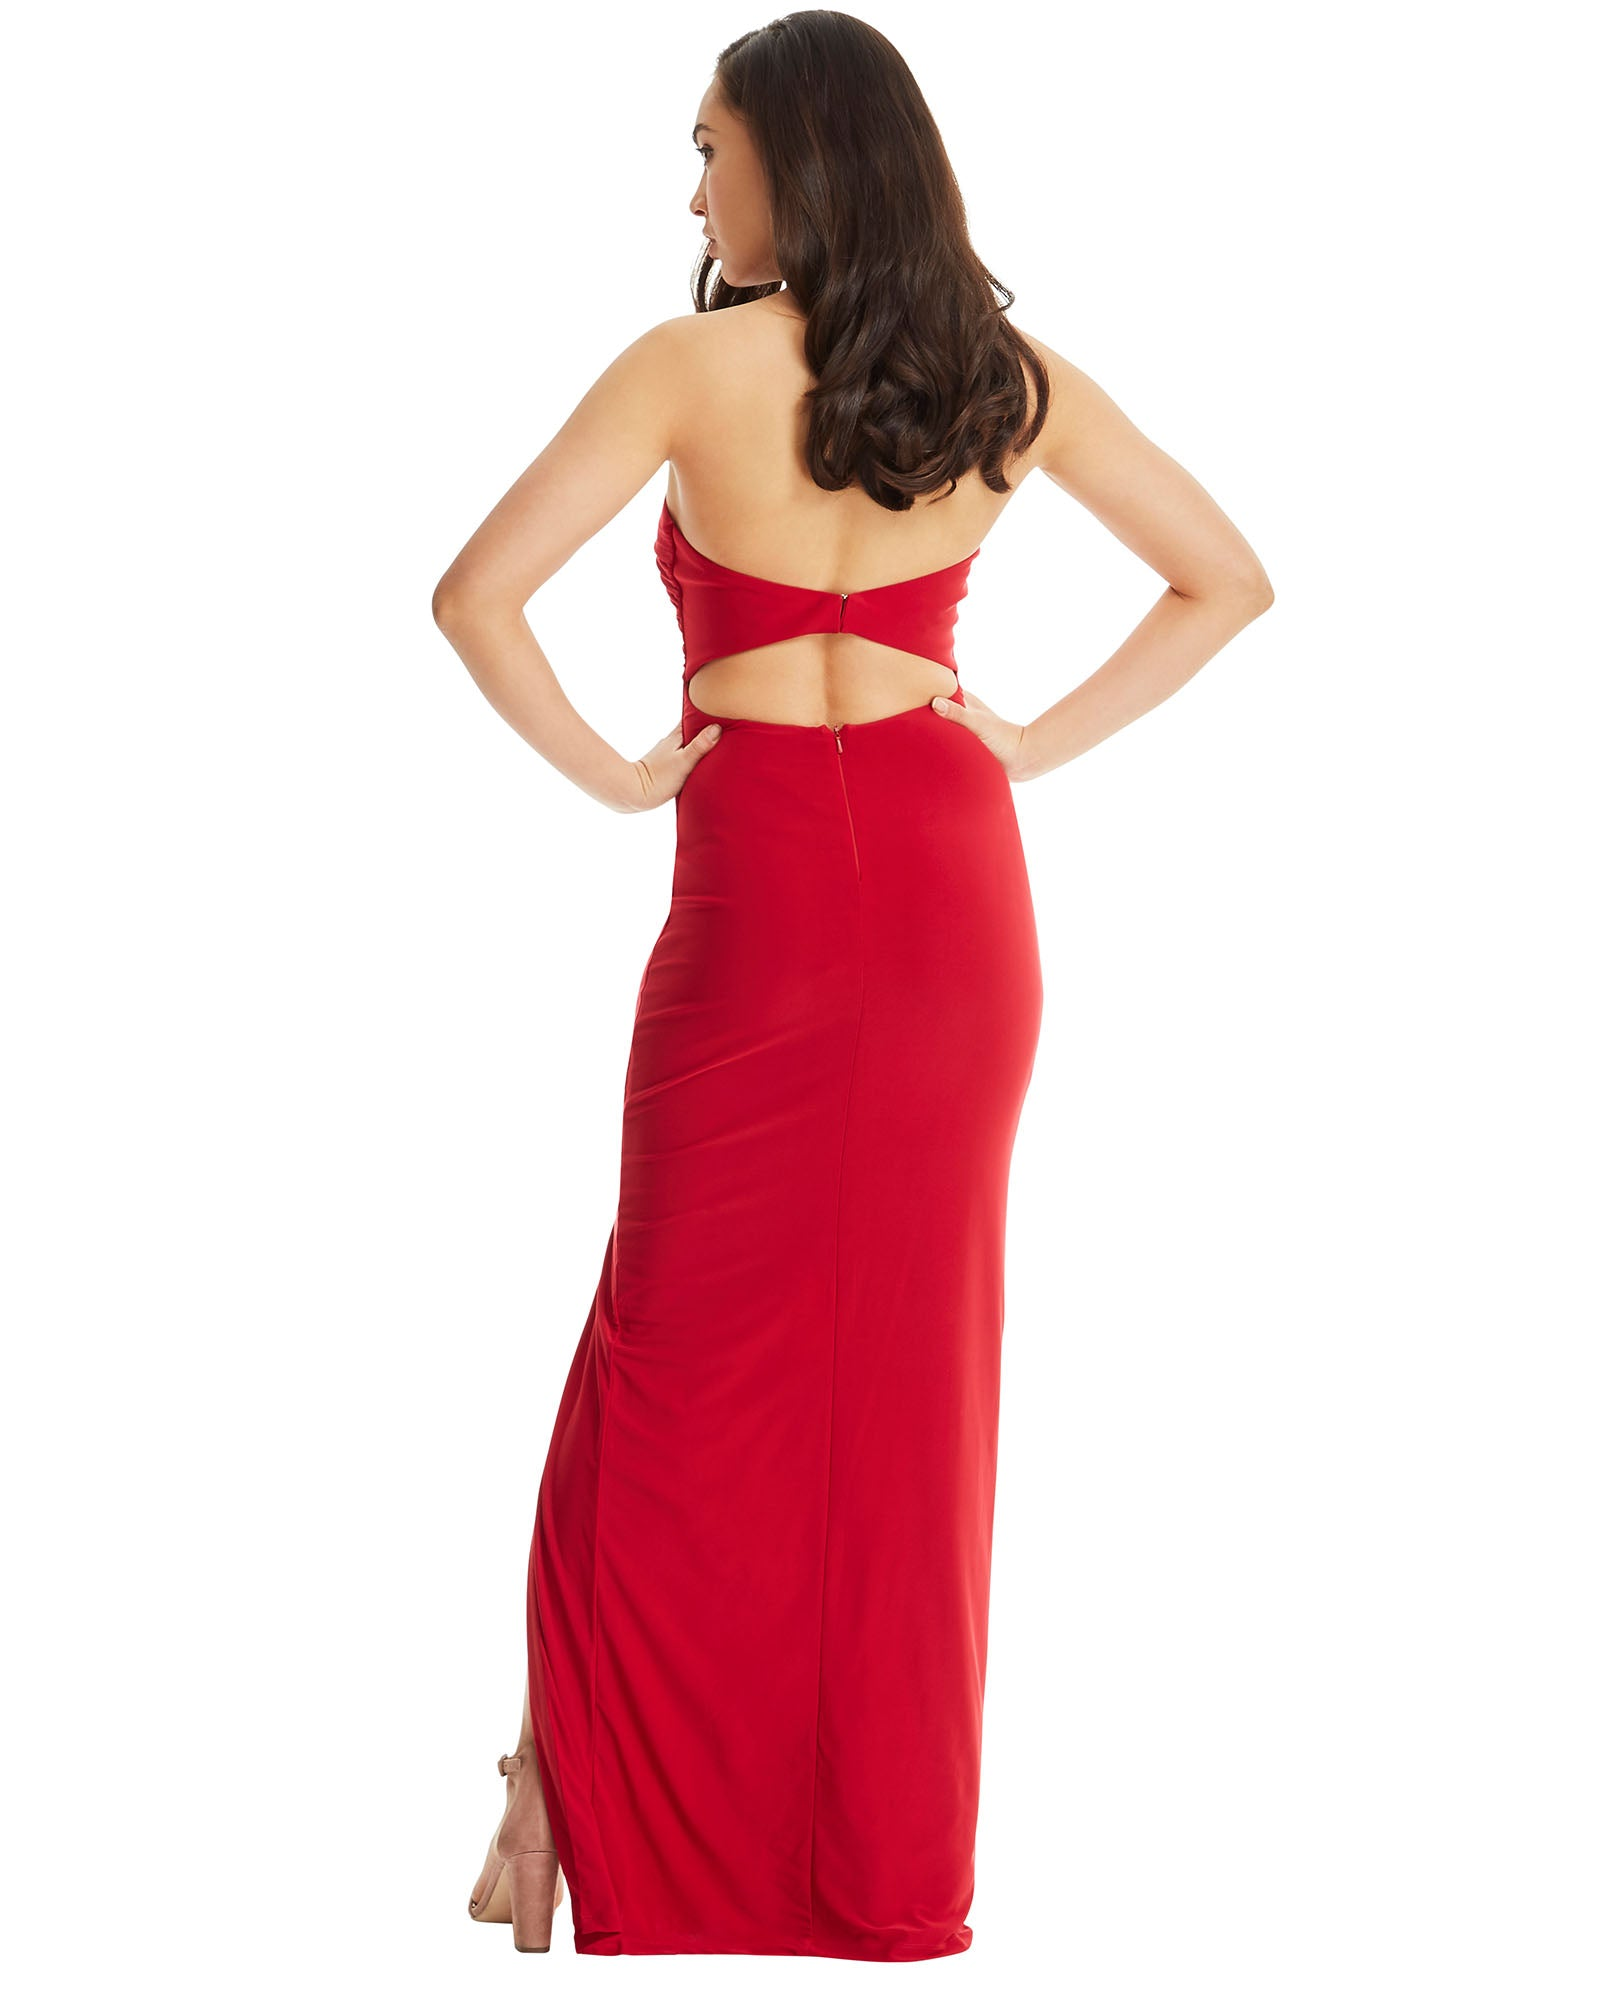 SKIVA strapless evening dress long red split gown open back sheath stretch fabric